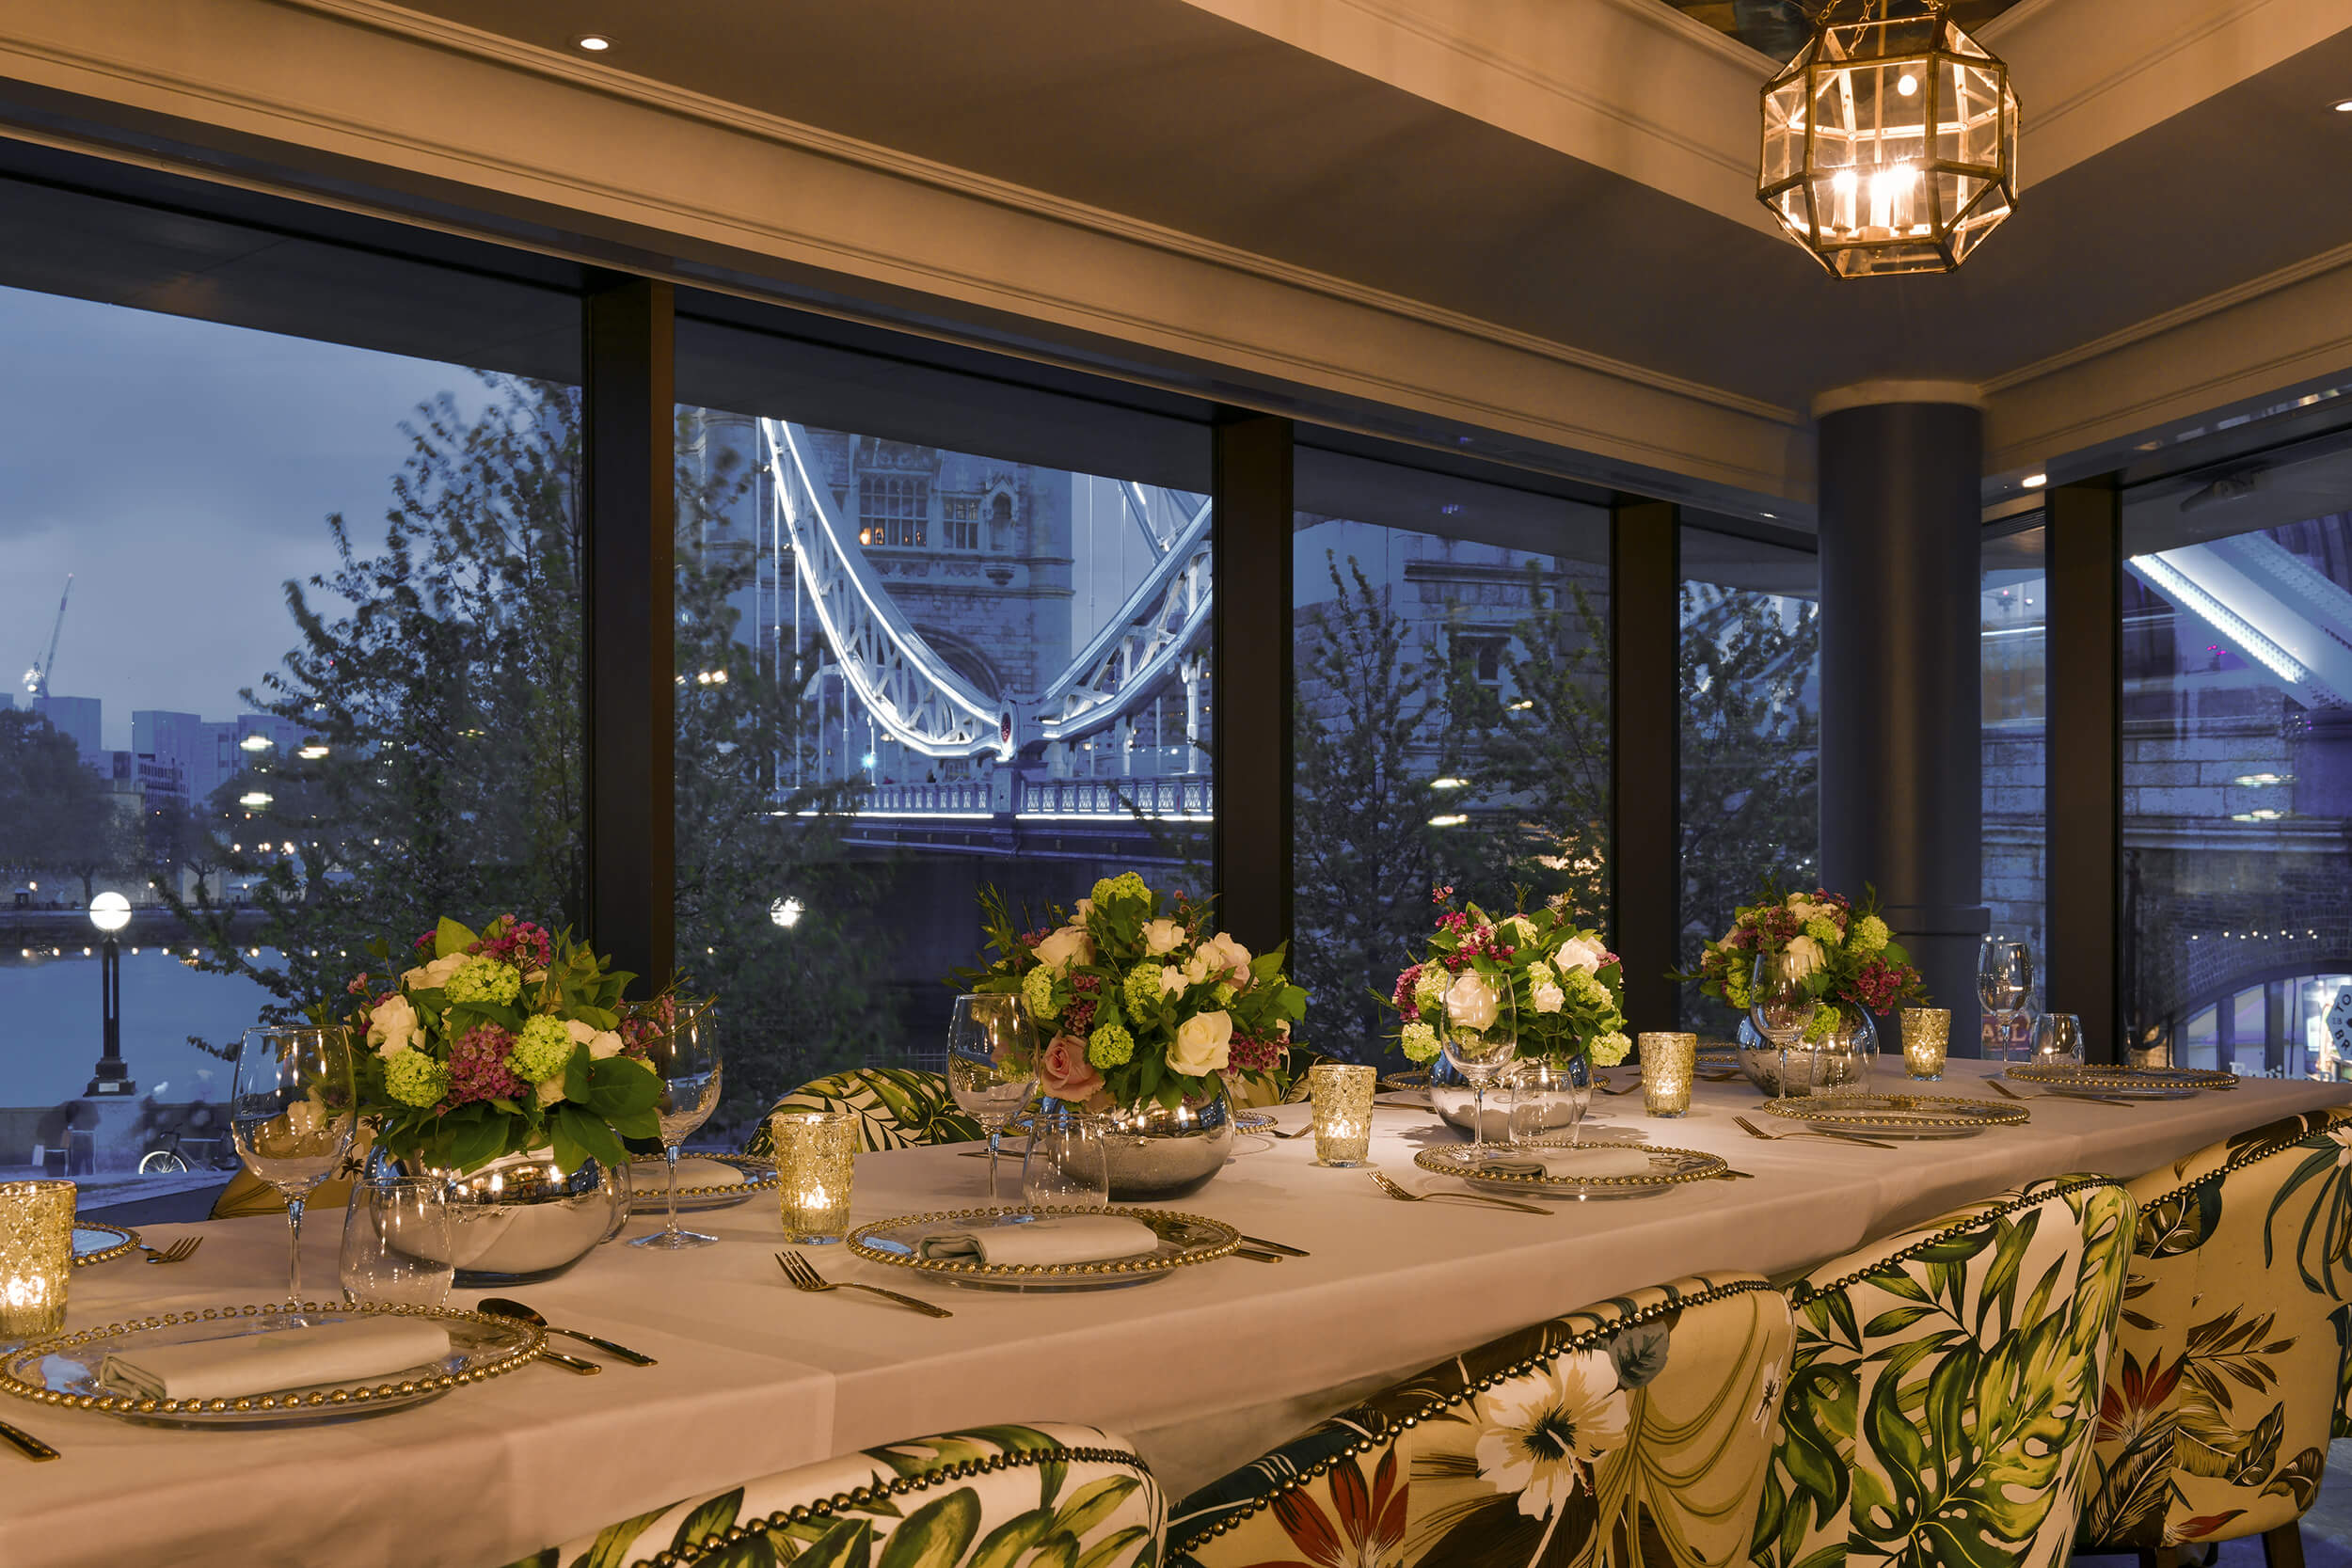 - The Ivy Tower Bridge